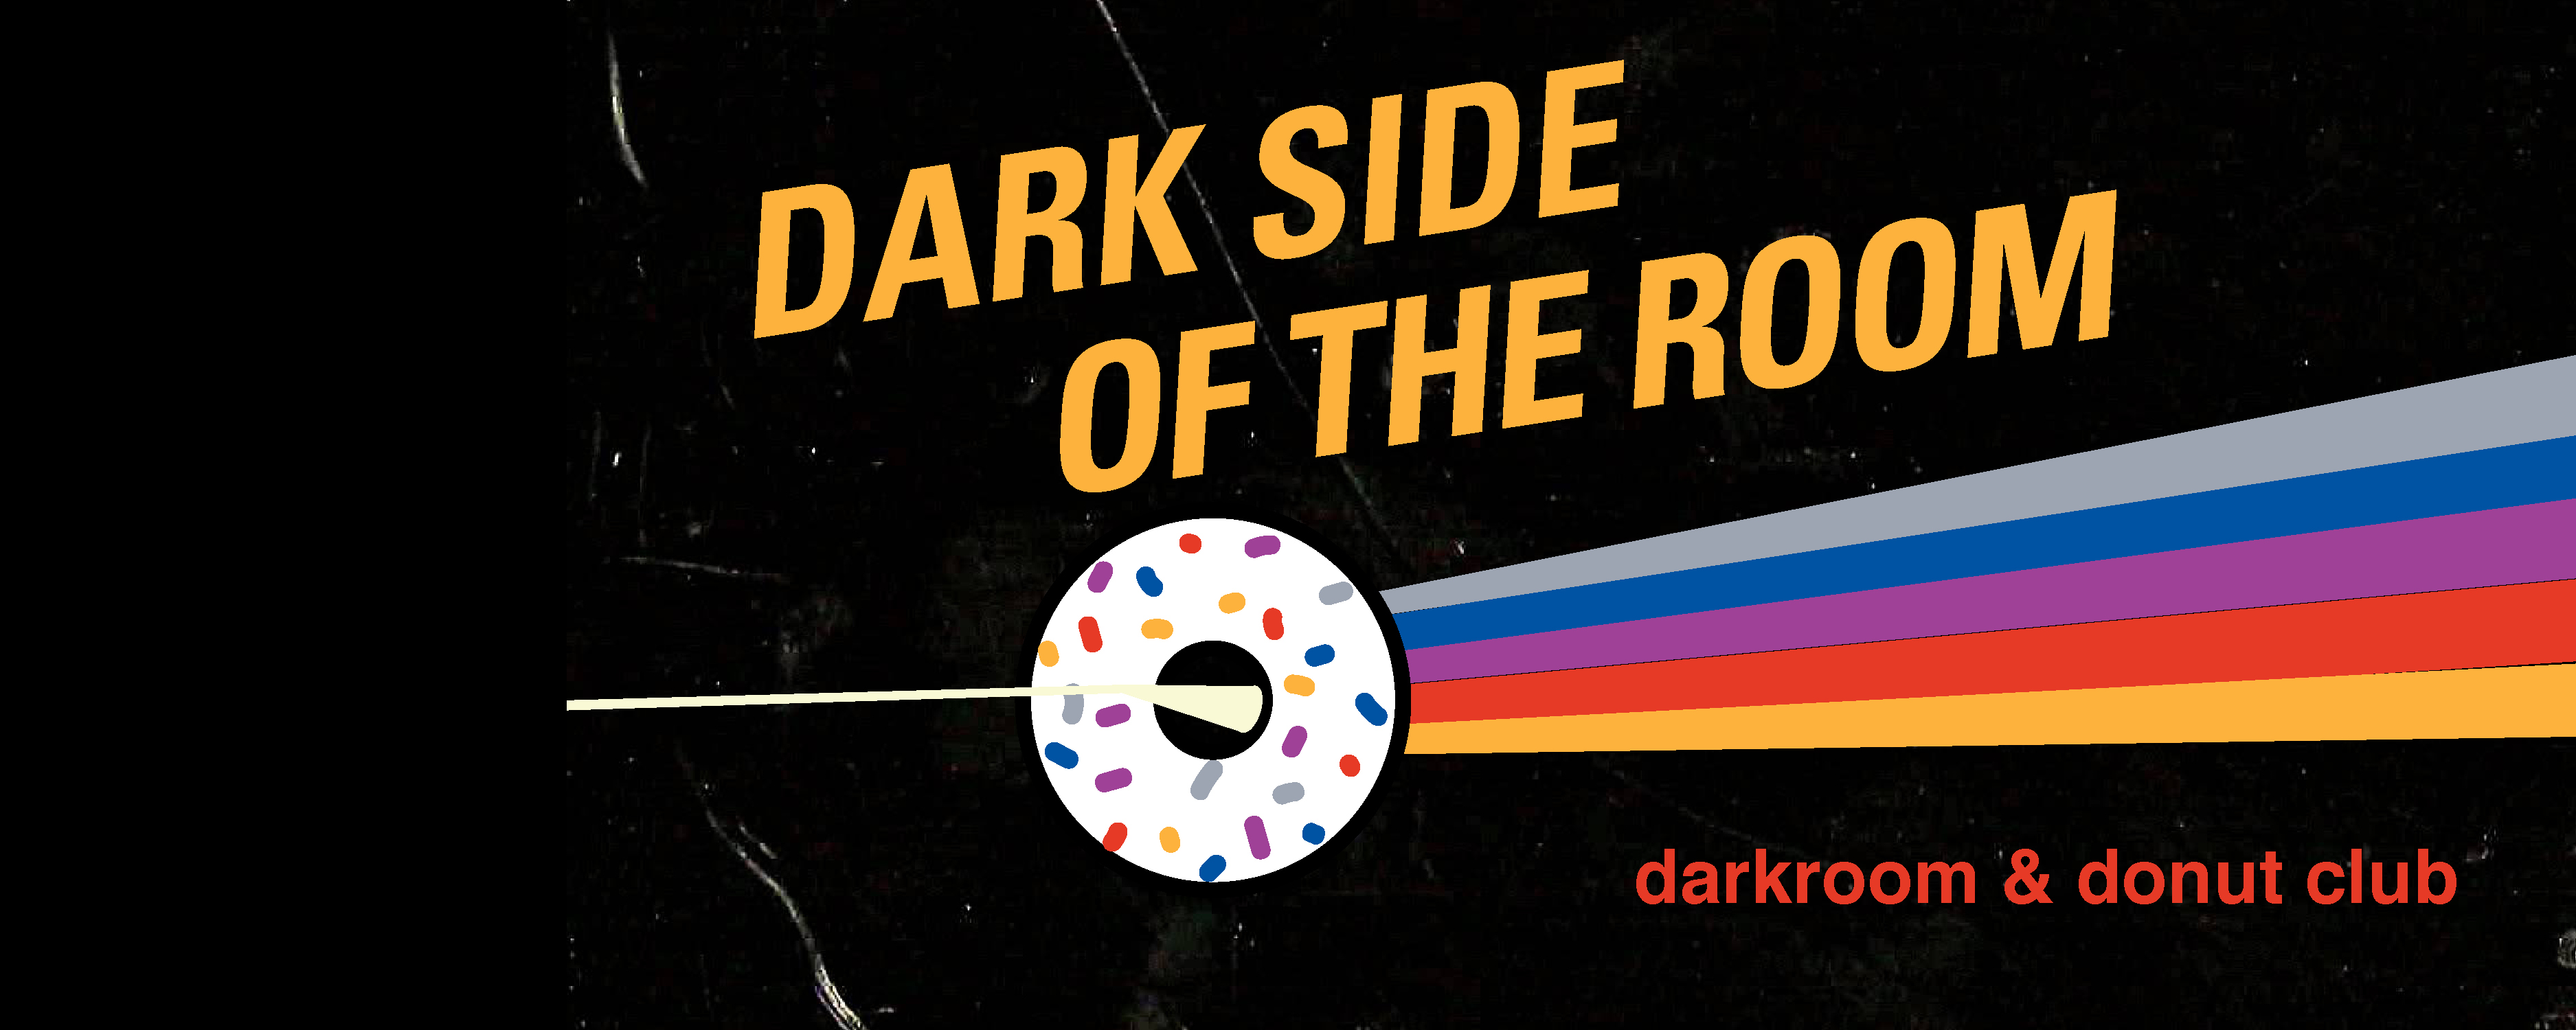 Dark Side of the Room: darkroom & donut club